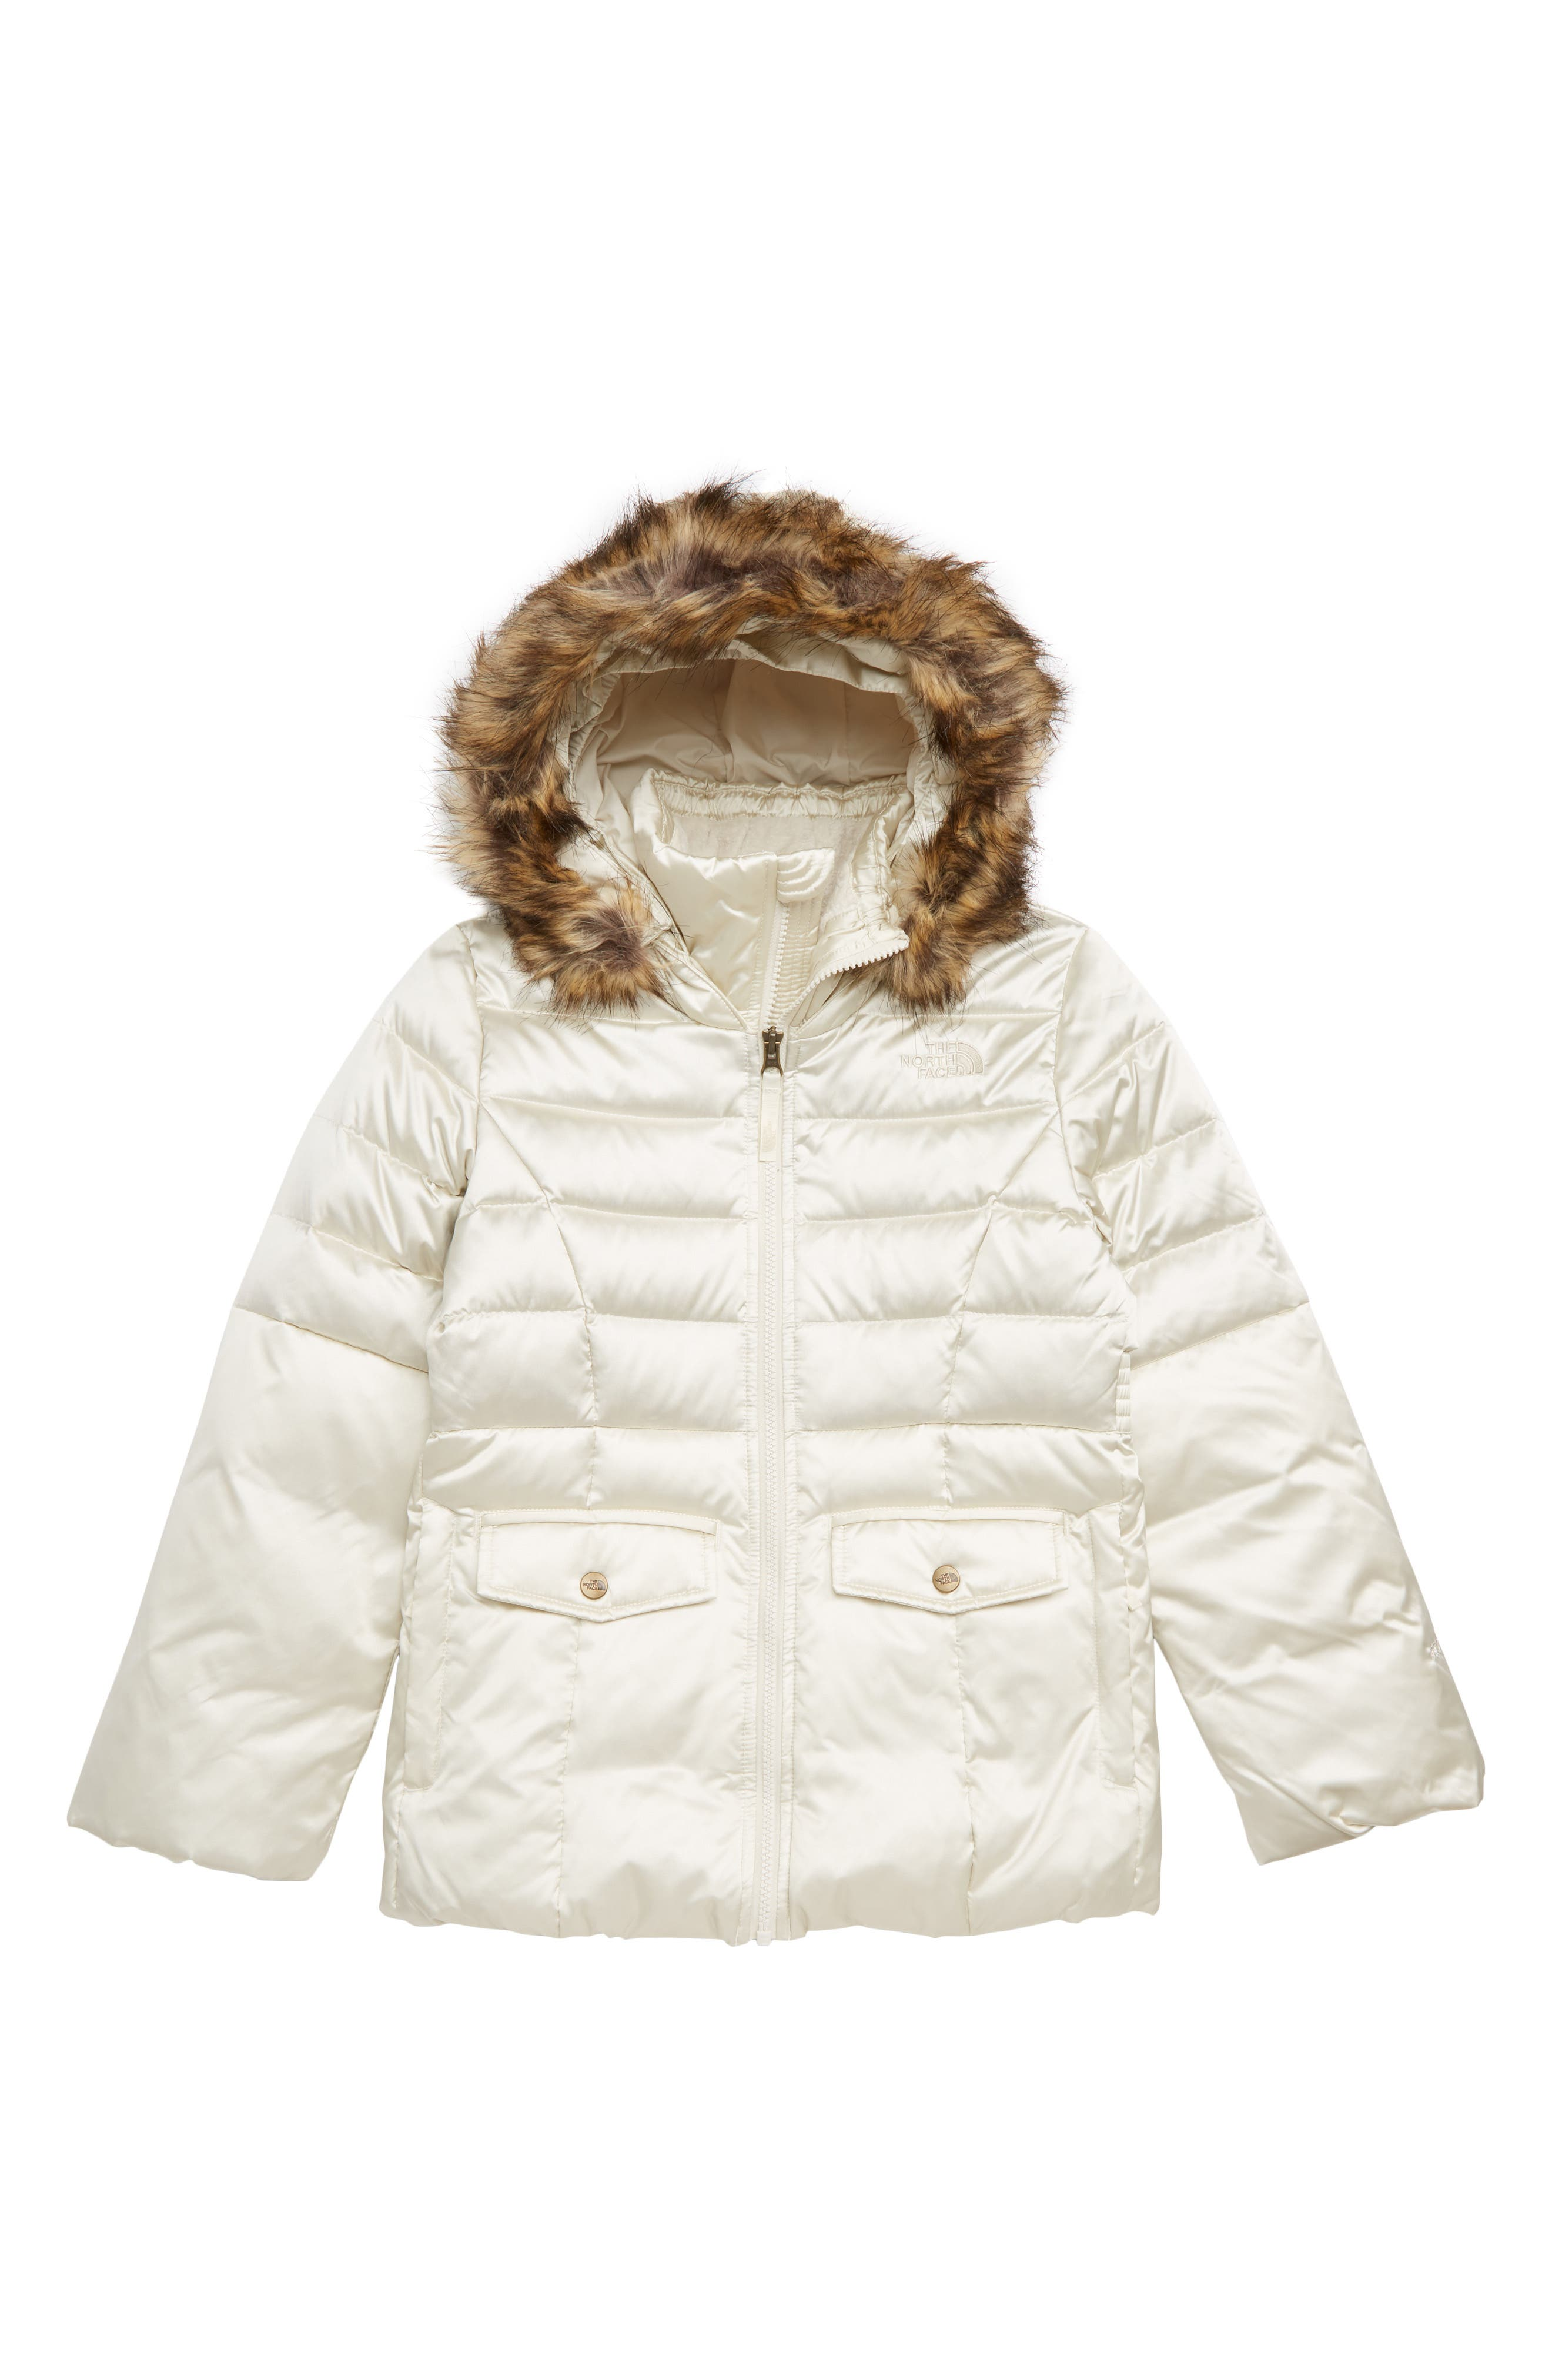 Gotham 2.0 Water Resistant 550-Fill-Power Down Jacket with Faux Fur Trim,                         Main,                         color, VINTAGE WHITE